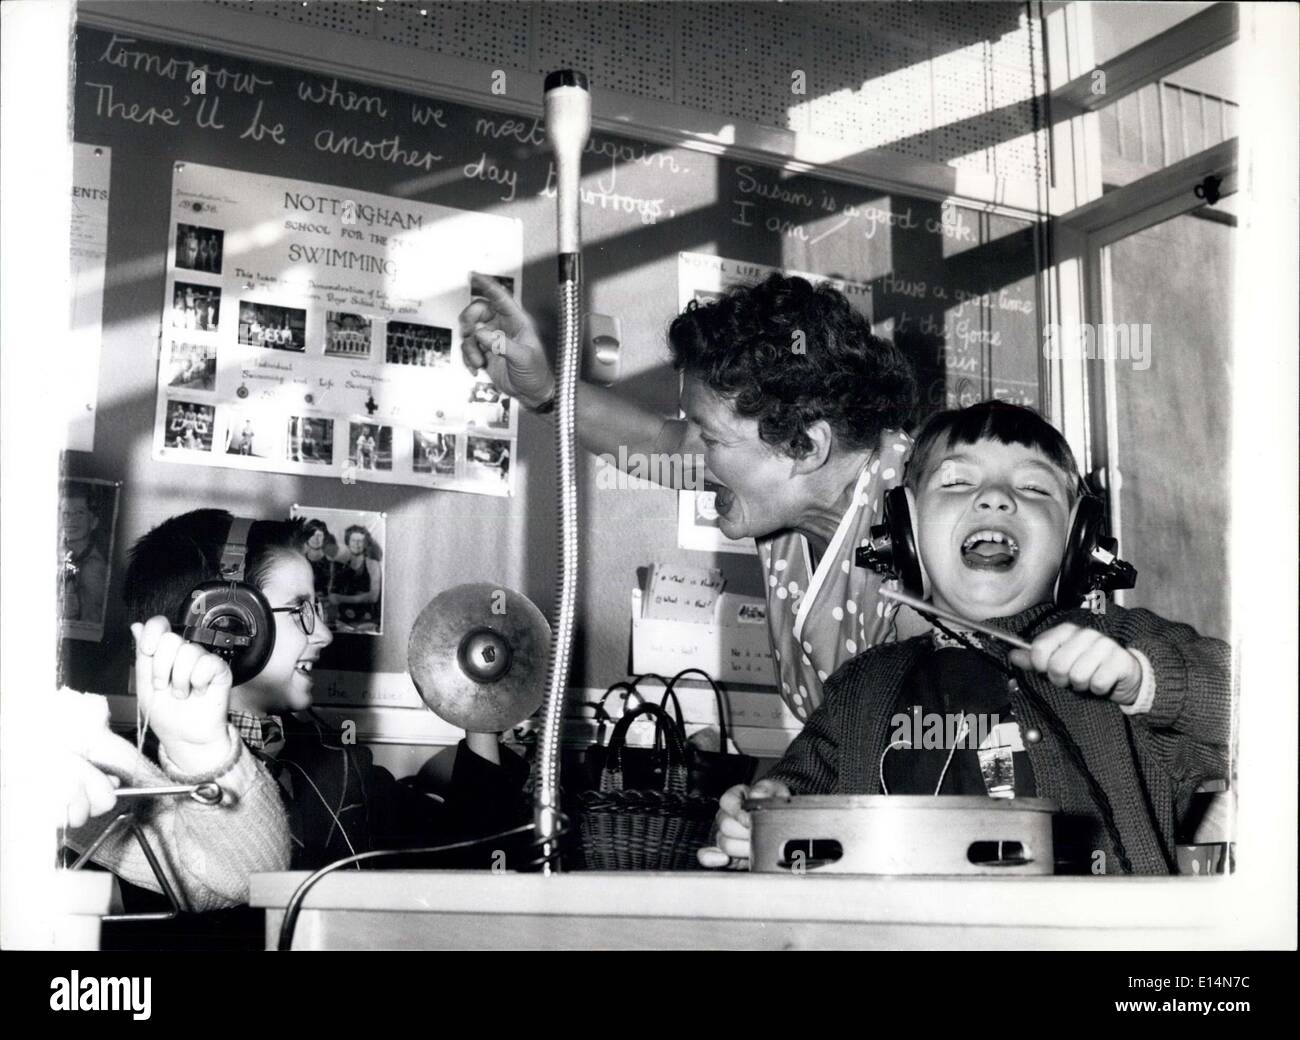 Apr. 05, 2012 - ''There'll Be Another Day tomorrow....'' and when it comes these deaf children will still be as happy as they are right now during a music lesson when the sounds of a record are transmitted to their ears via headphones. With them is teacher Dorothy Marriott. On right is our friend Anita Taylor, eight. - Stock Image